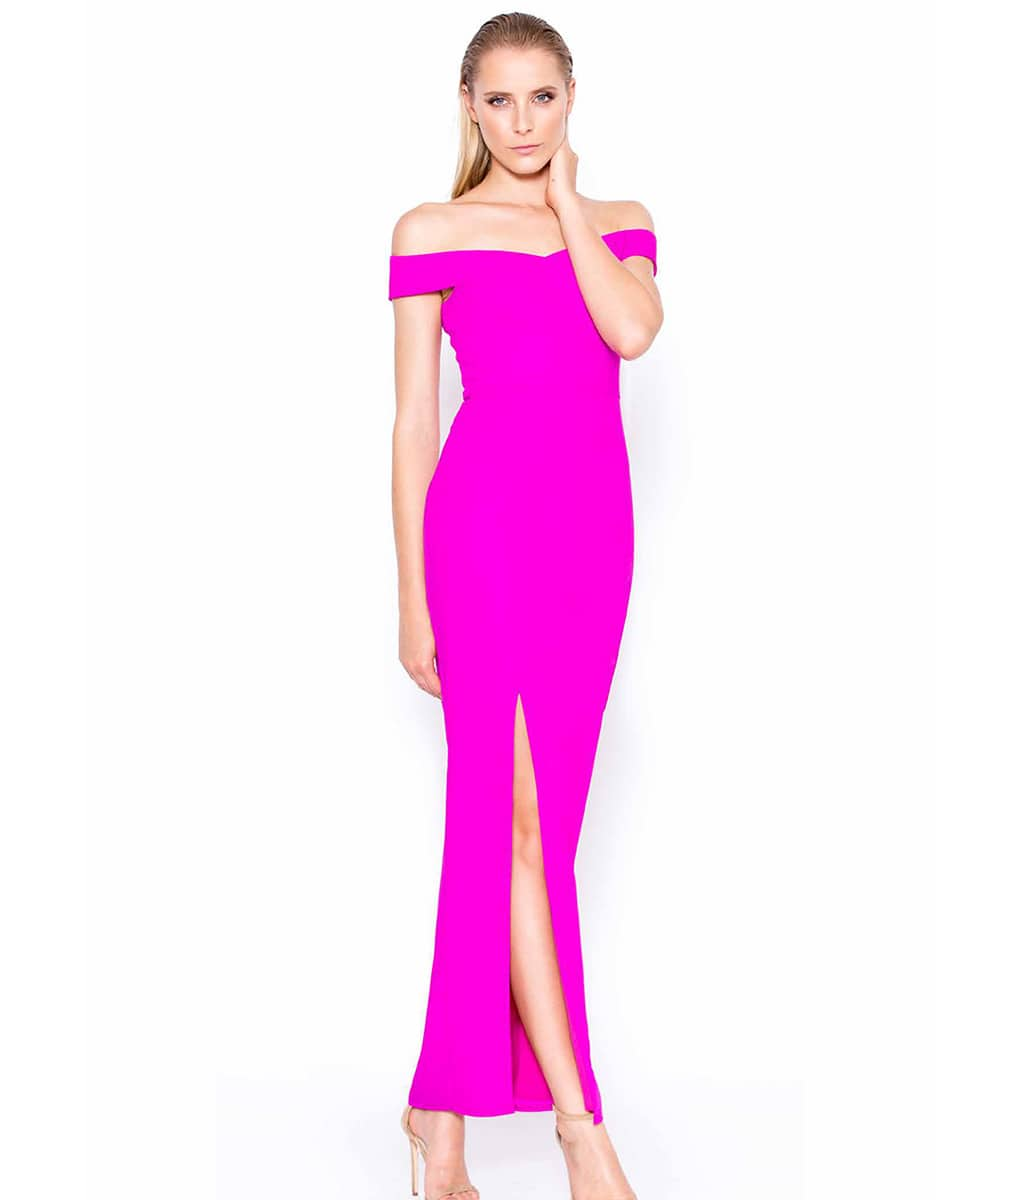 d52fc4d4a704 Lumier By Bariano Purple Bardot Gown